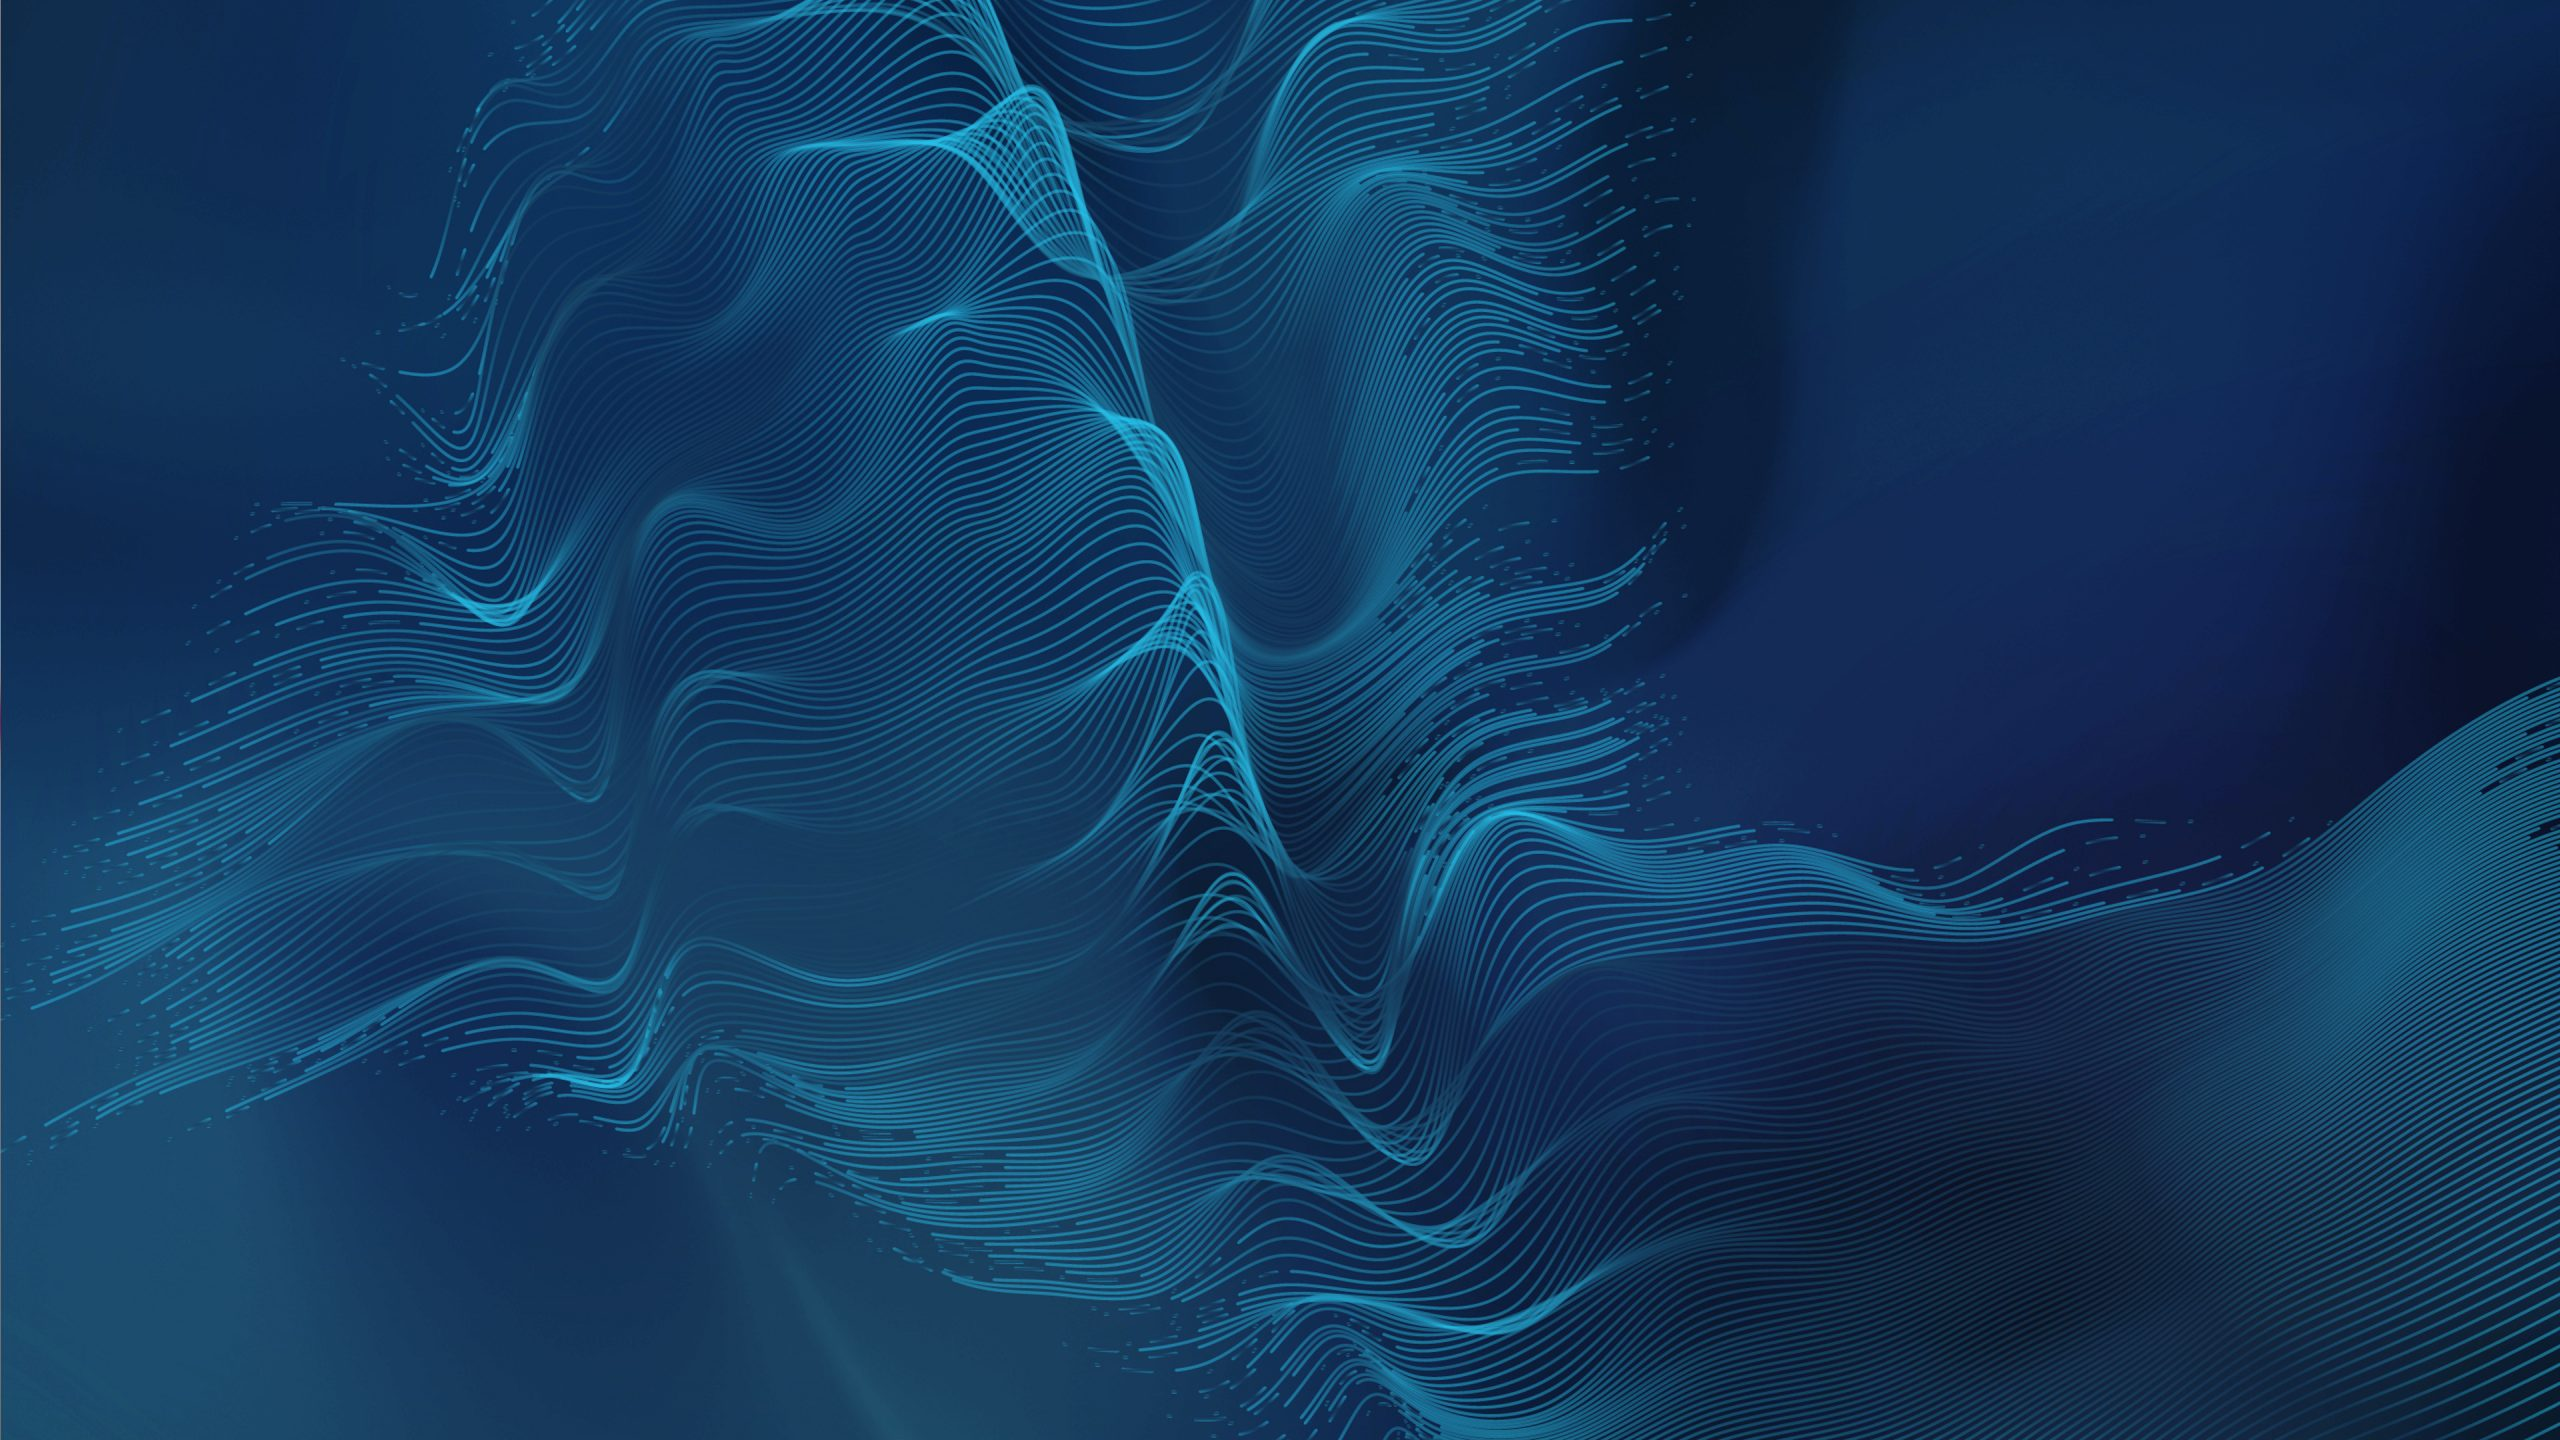 blue parametric wave lines graphic on dark blue background